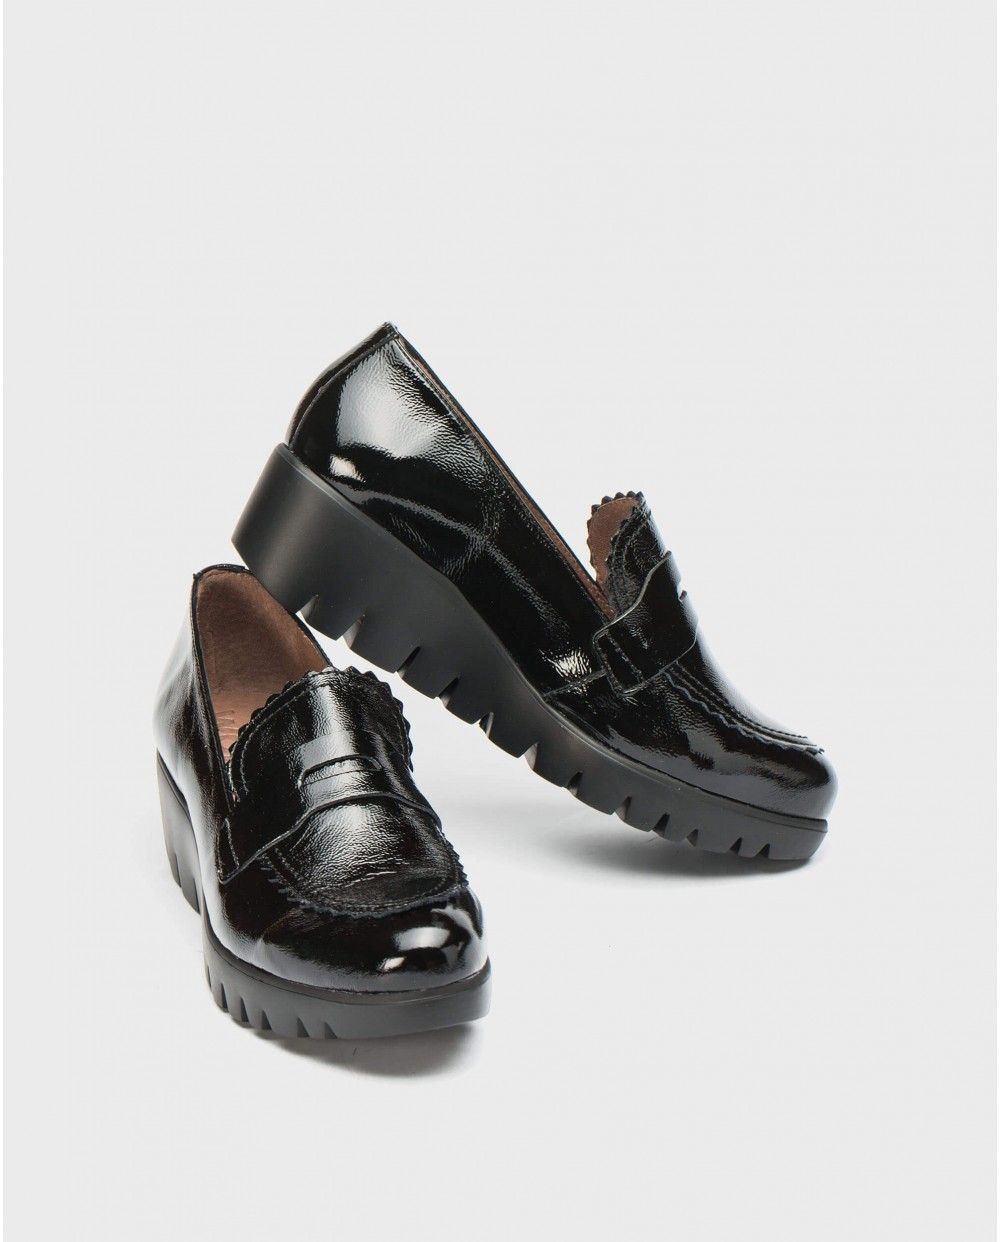 Wonders-Flat Shoes-Wedge shoe with flap